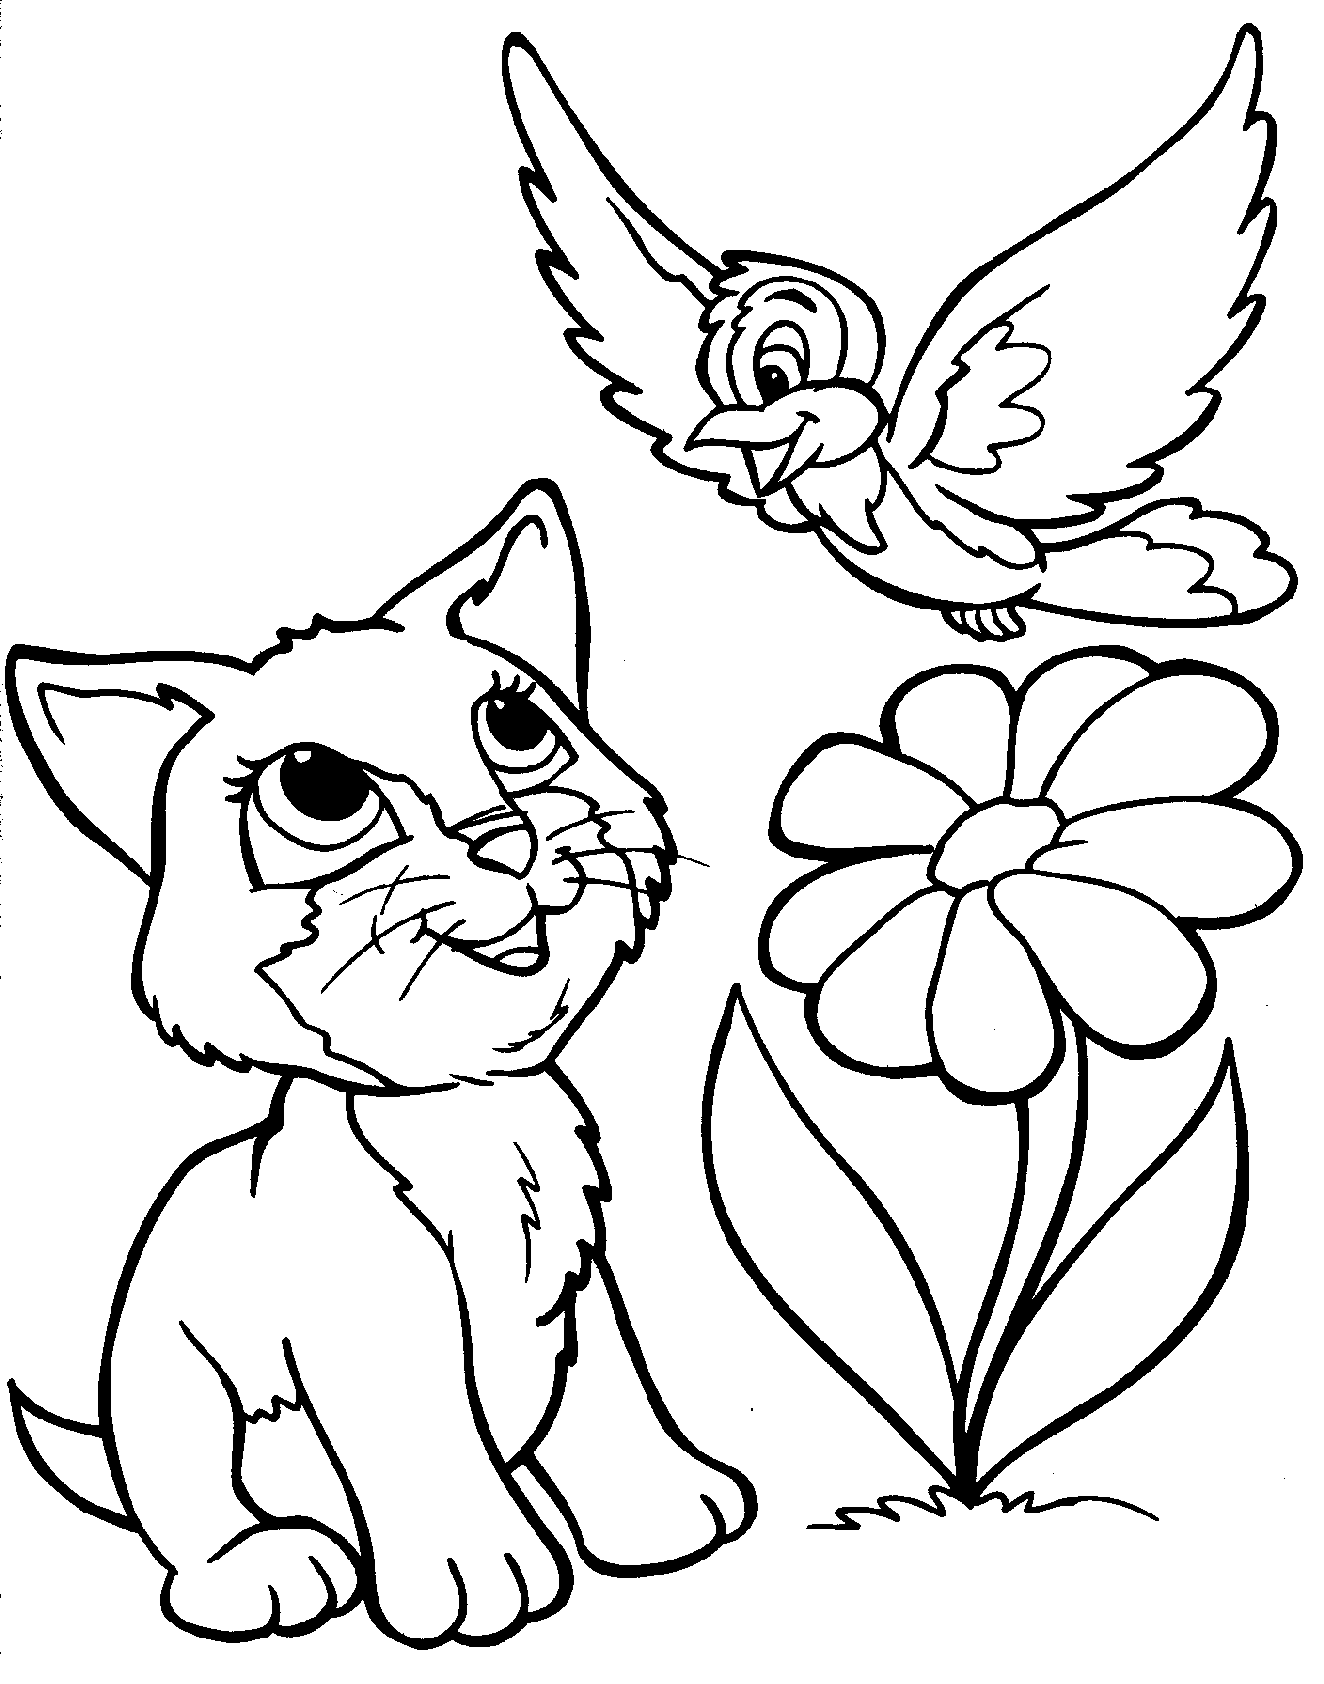 kitten bird flower coloring page printable coloring printables cat coloring page coloring. Black Bedroom Furniture Sets. Home Design Ideas